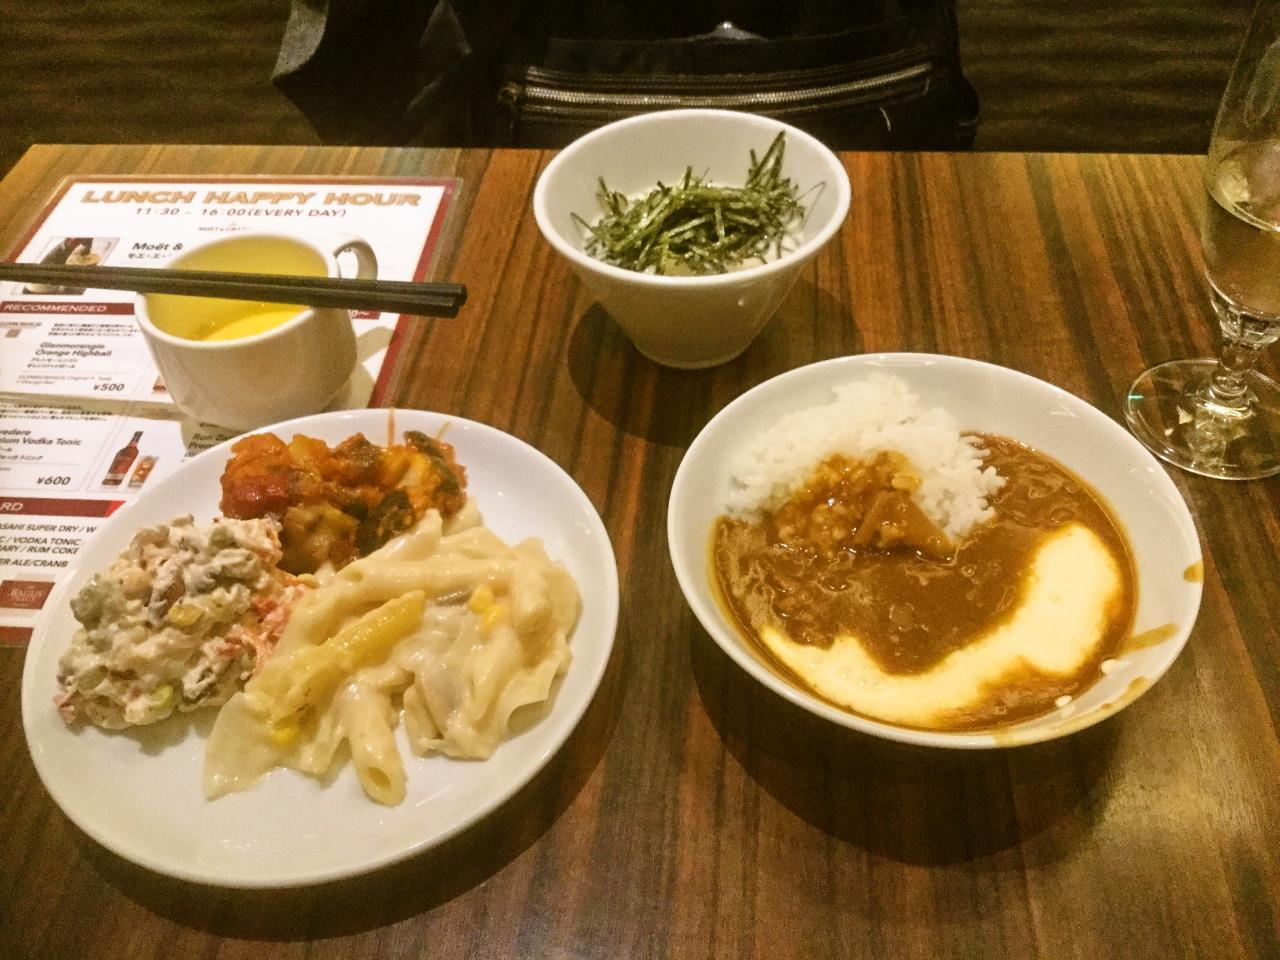 The BAGUS PLACE(食べ放題)